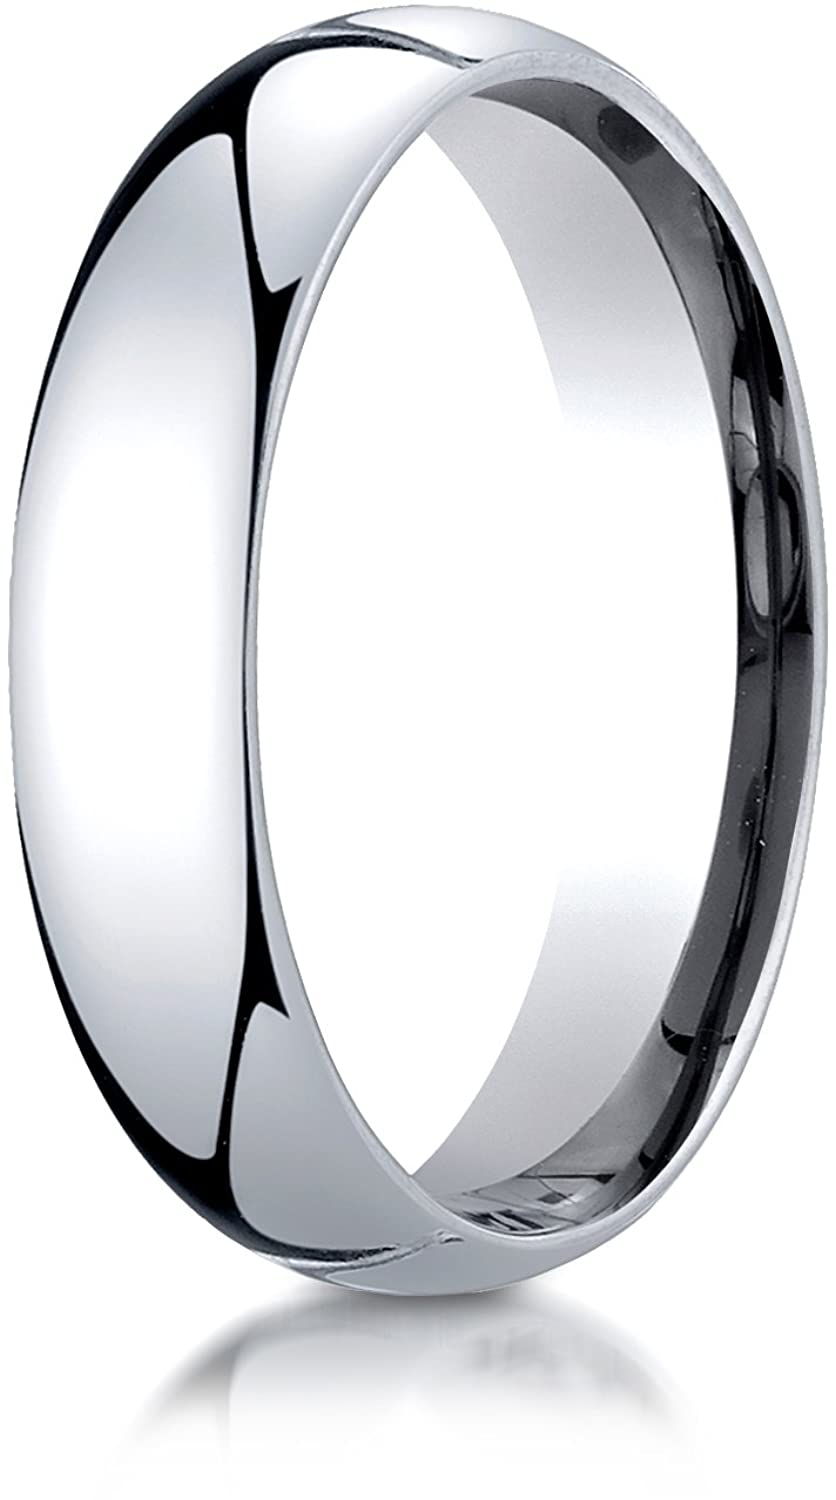 Benchmark 14K White Gold 5mm Slightly Domed Standard Comfort-Fit Wedding Band Ring (Sizes 4 - 15 )